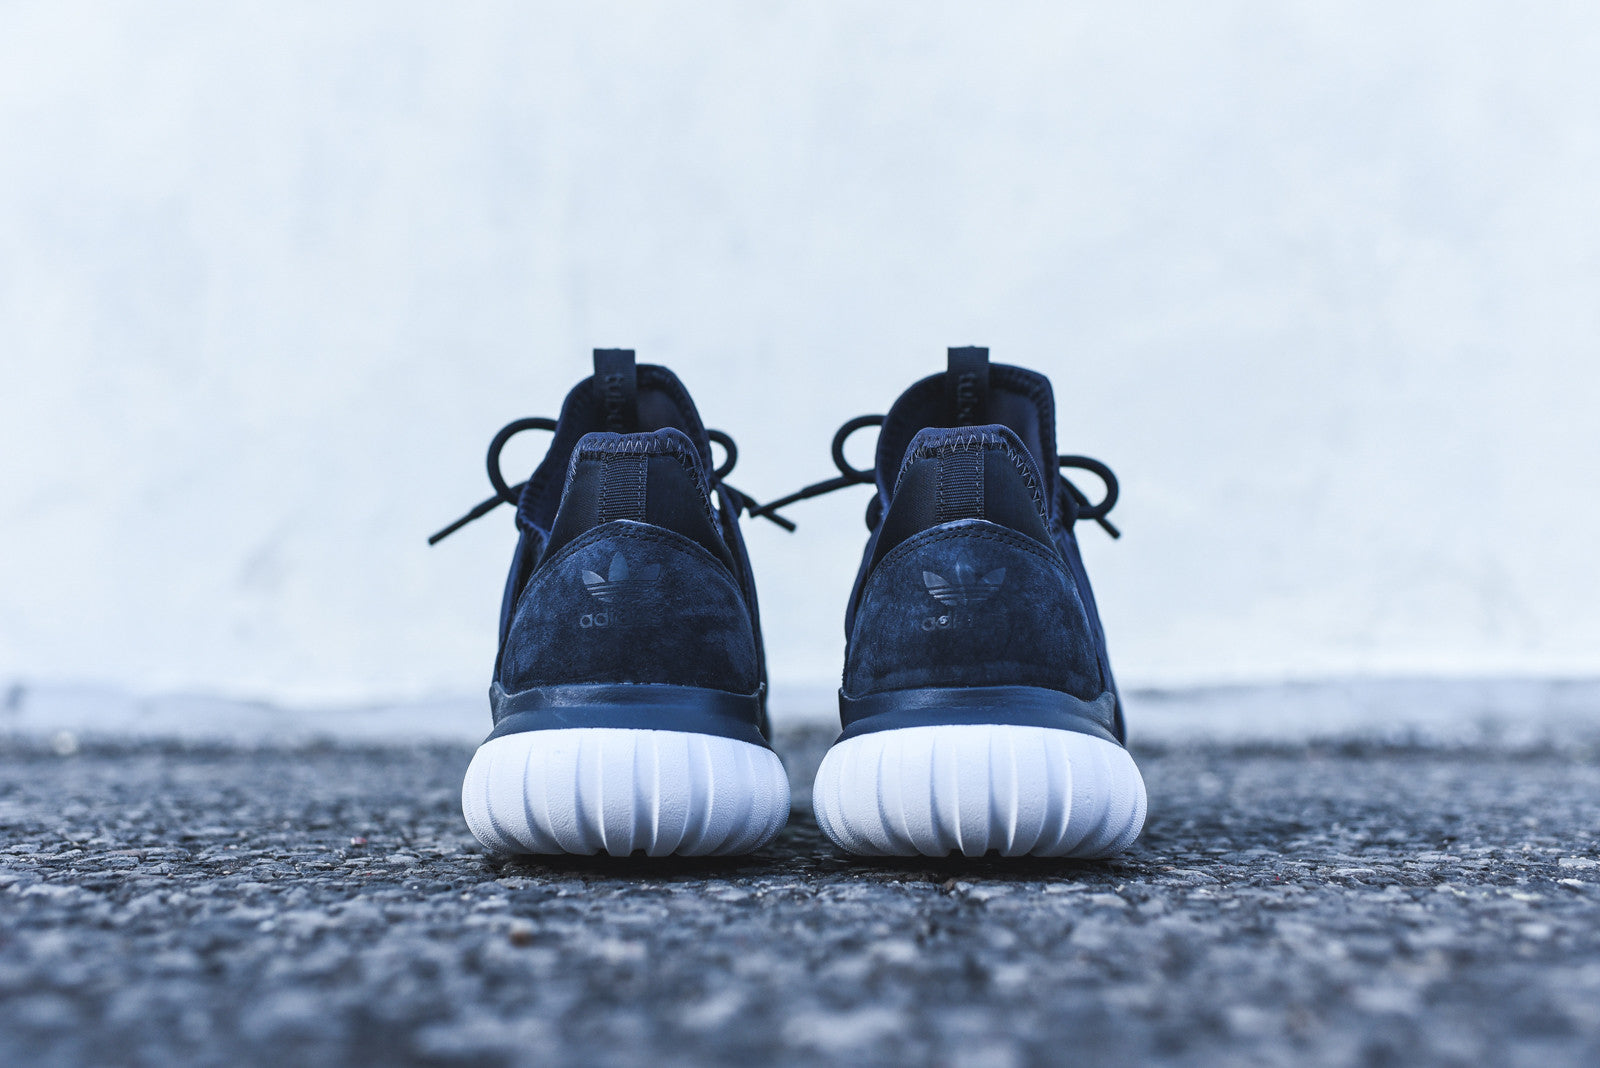 Adidas Tubular X Night Cargo Primeknit